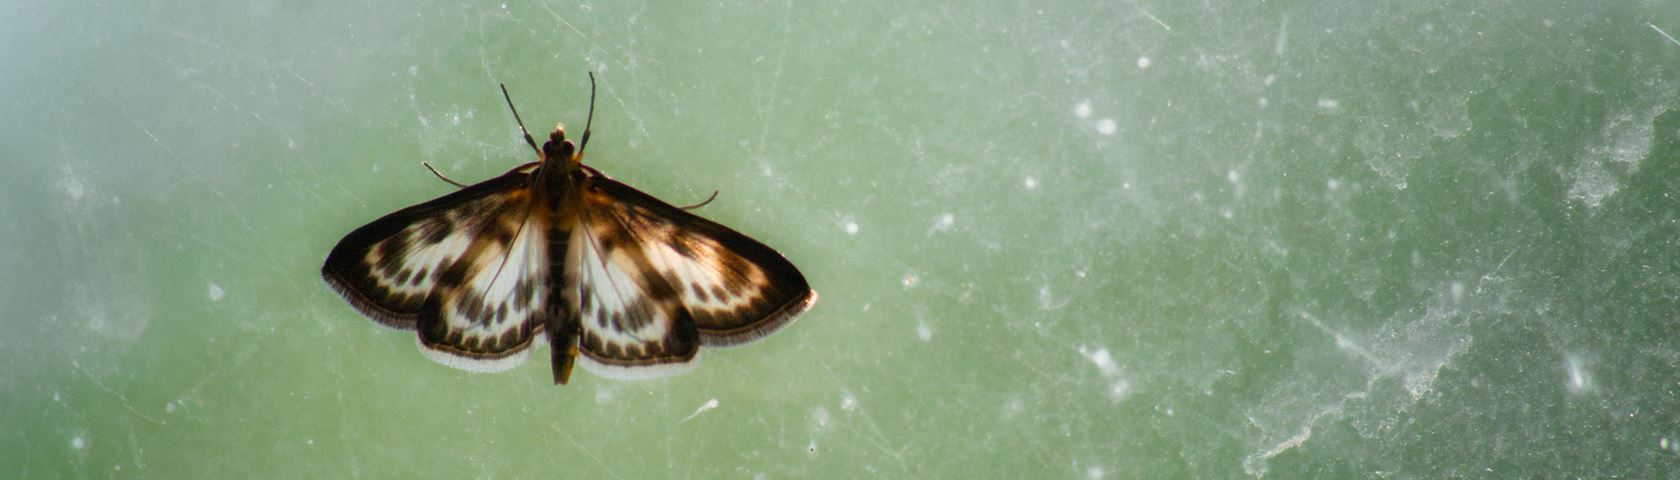 Fringed Butterfly